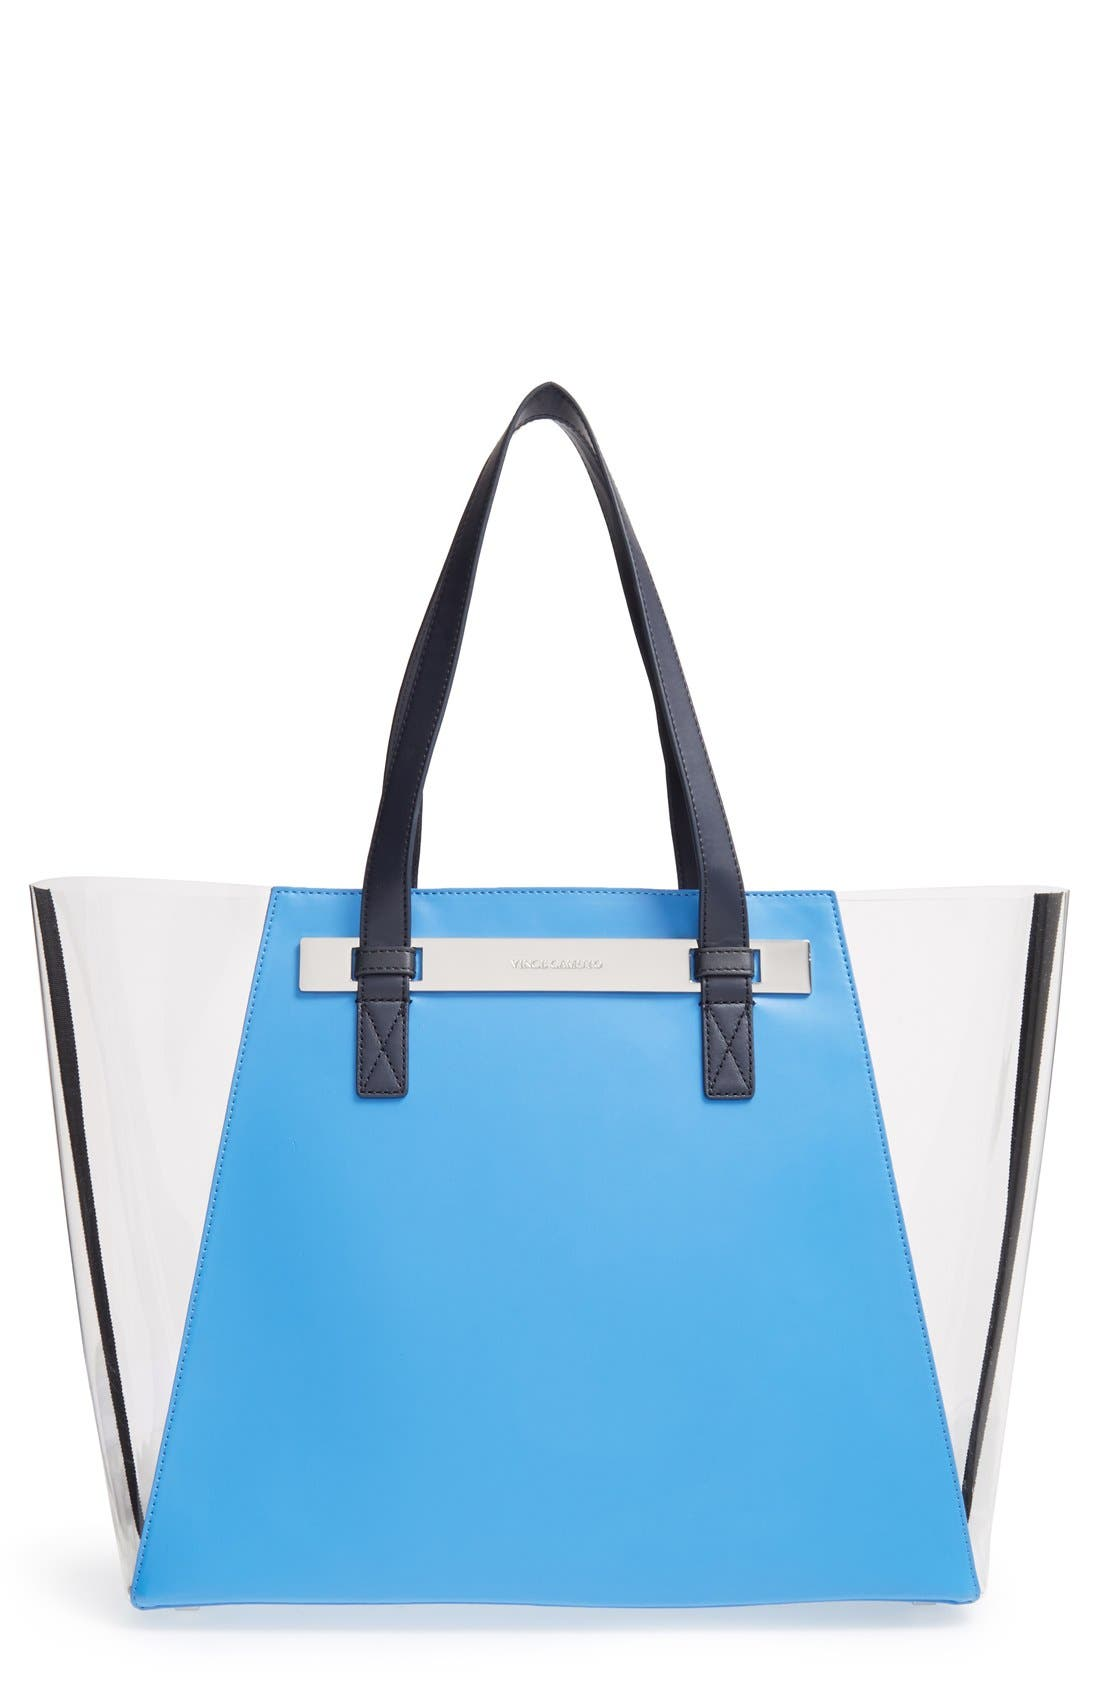 Main Image - Vince Camuto 'Jace' Tote